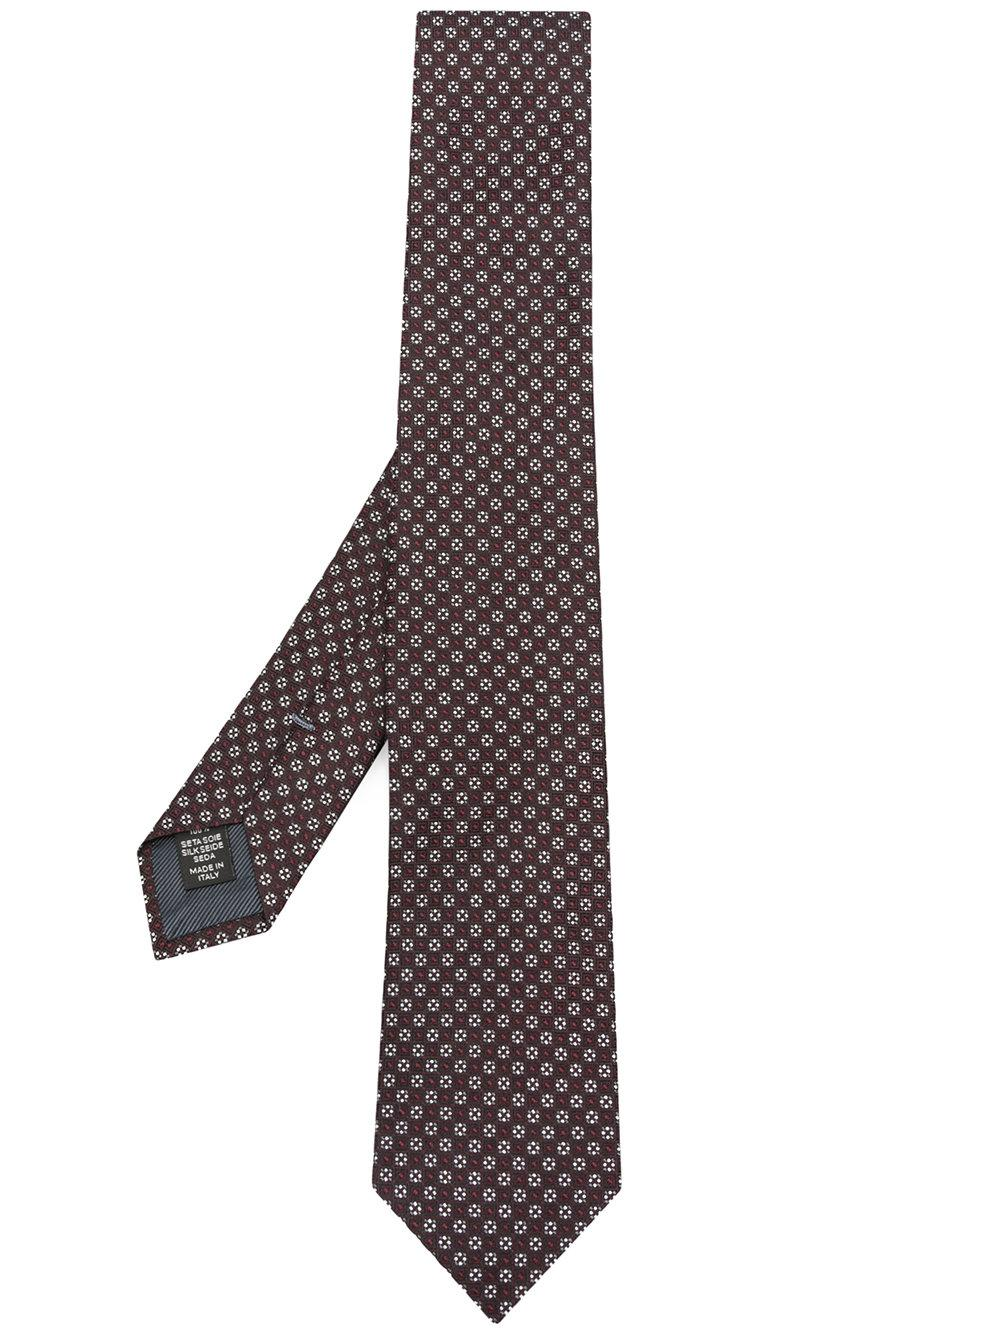 Ermenegildo Zegna Box Patterned Tie - Red